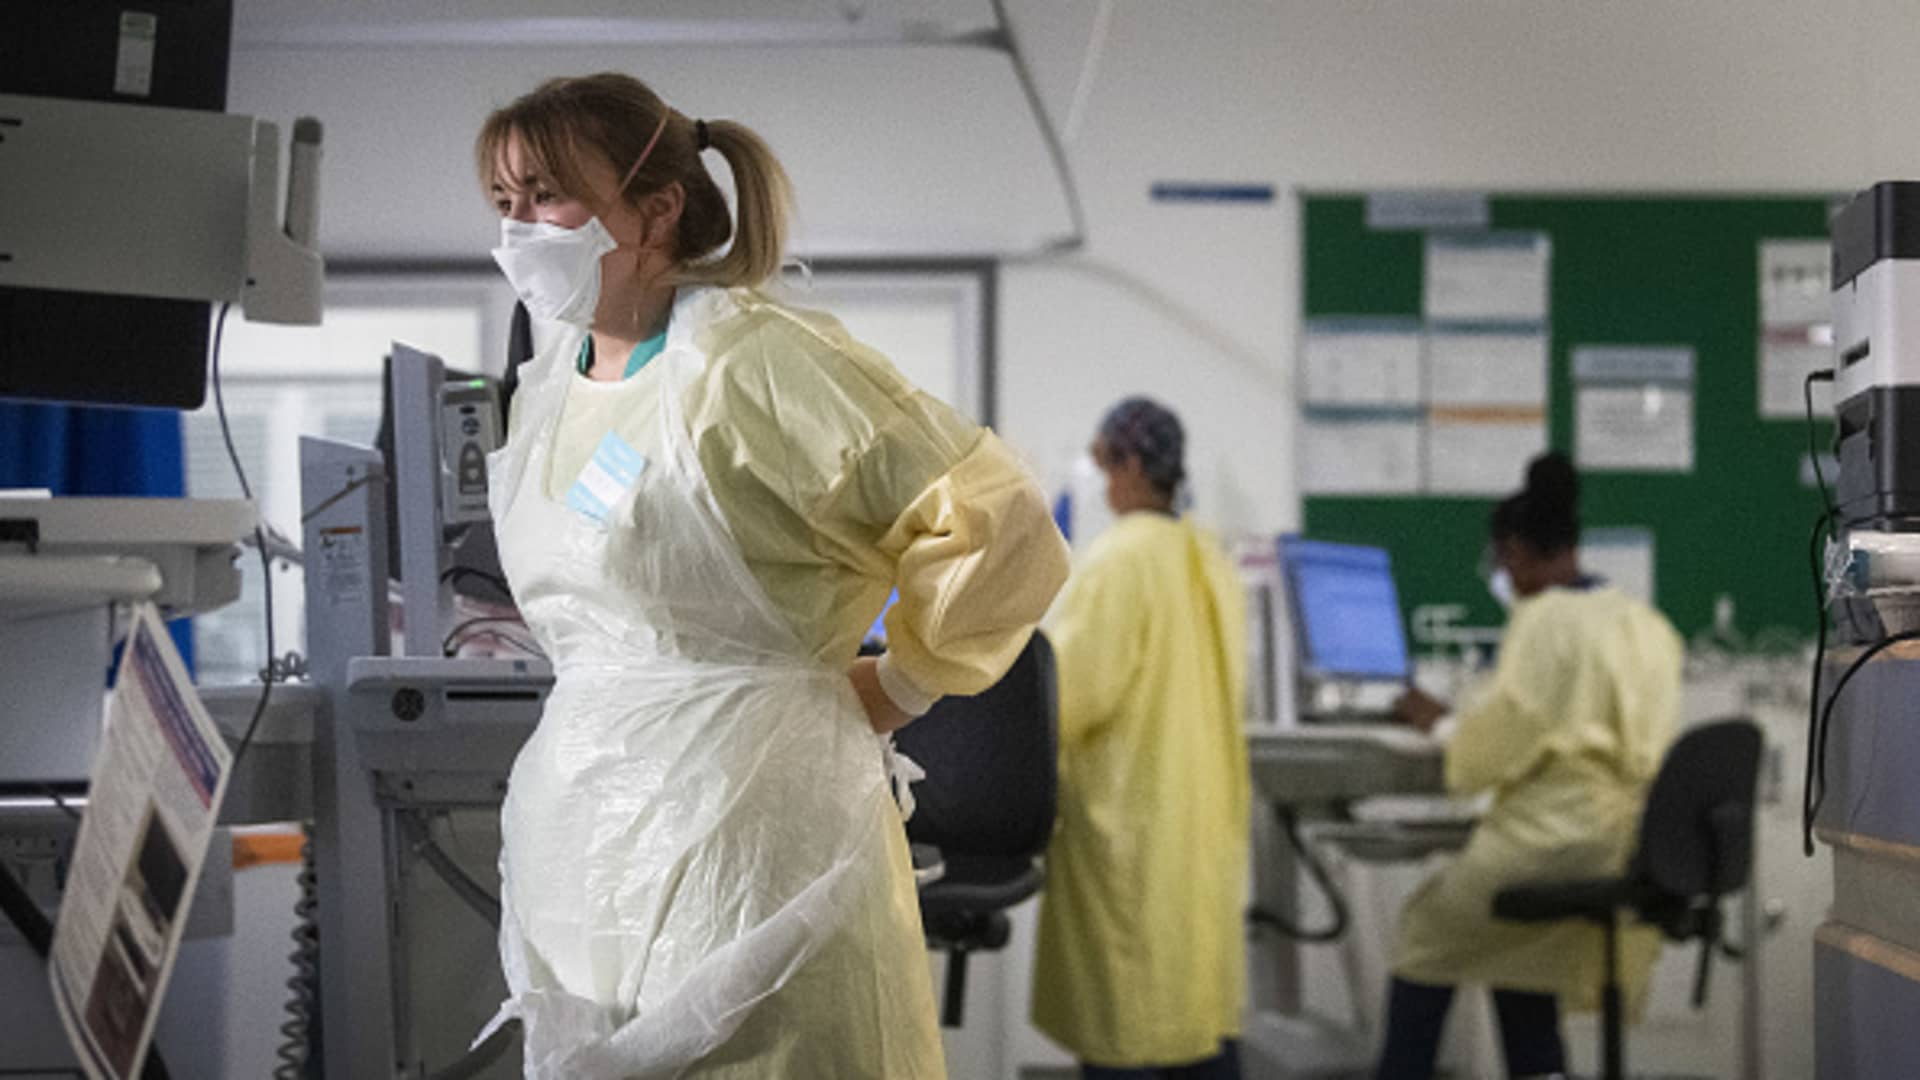 A nurse adjusts her PPE in the ICU (Intensive Care Unit) in St George's Hospital in Tooting, south-west London, where the number of intensive care beds for the critically sick has had to be increased from 60 to 120, the vast majority of which are for coronavirus patients.